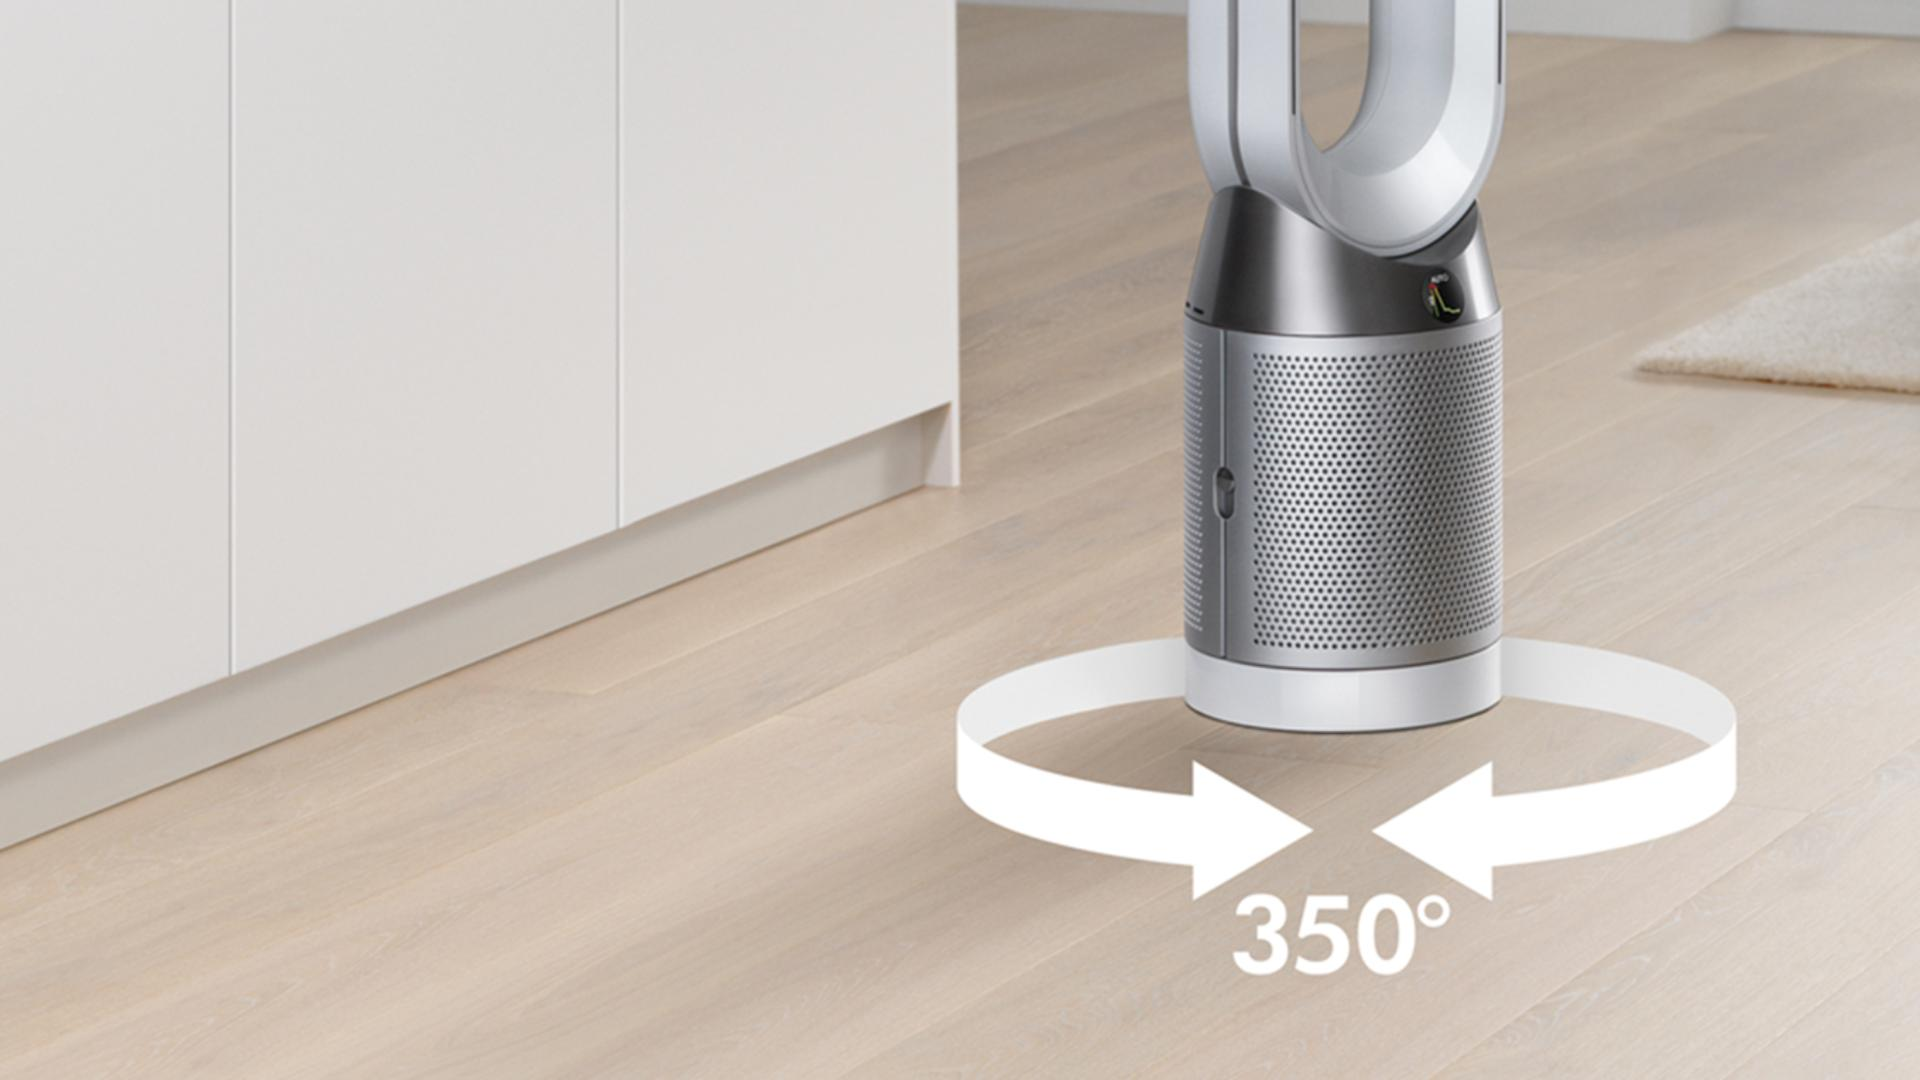 Graphic showing how the Dyson Pure Cool purifier turns 350 degrees